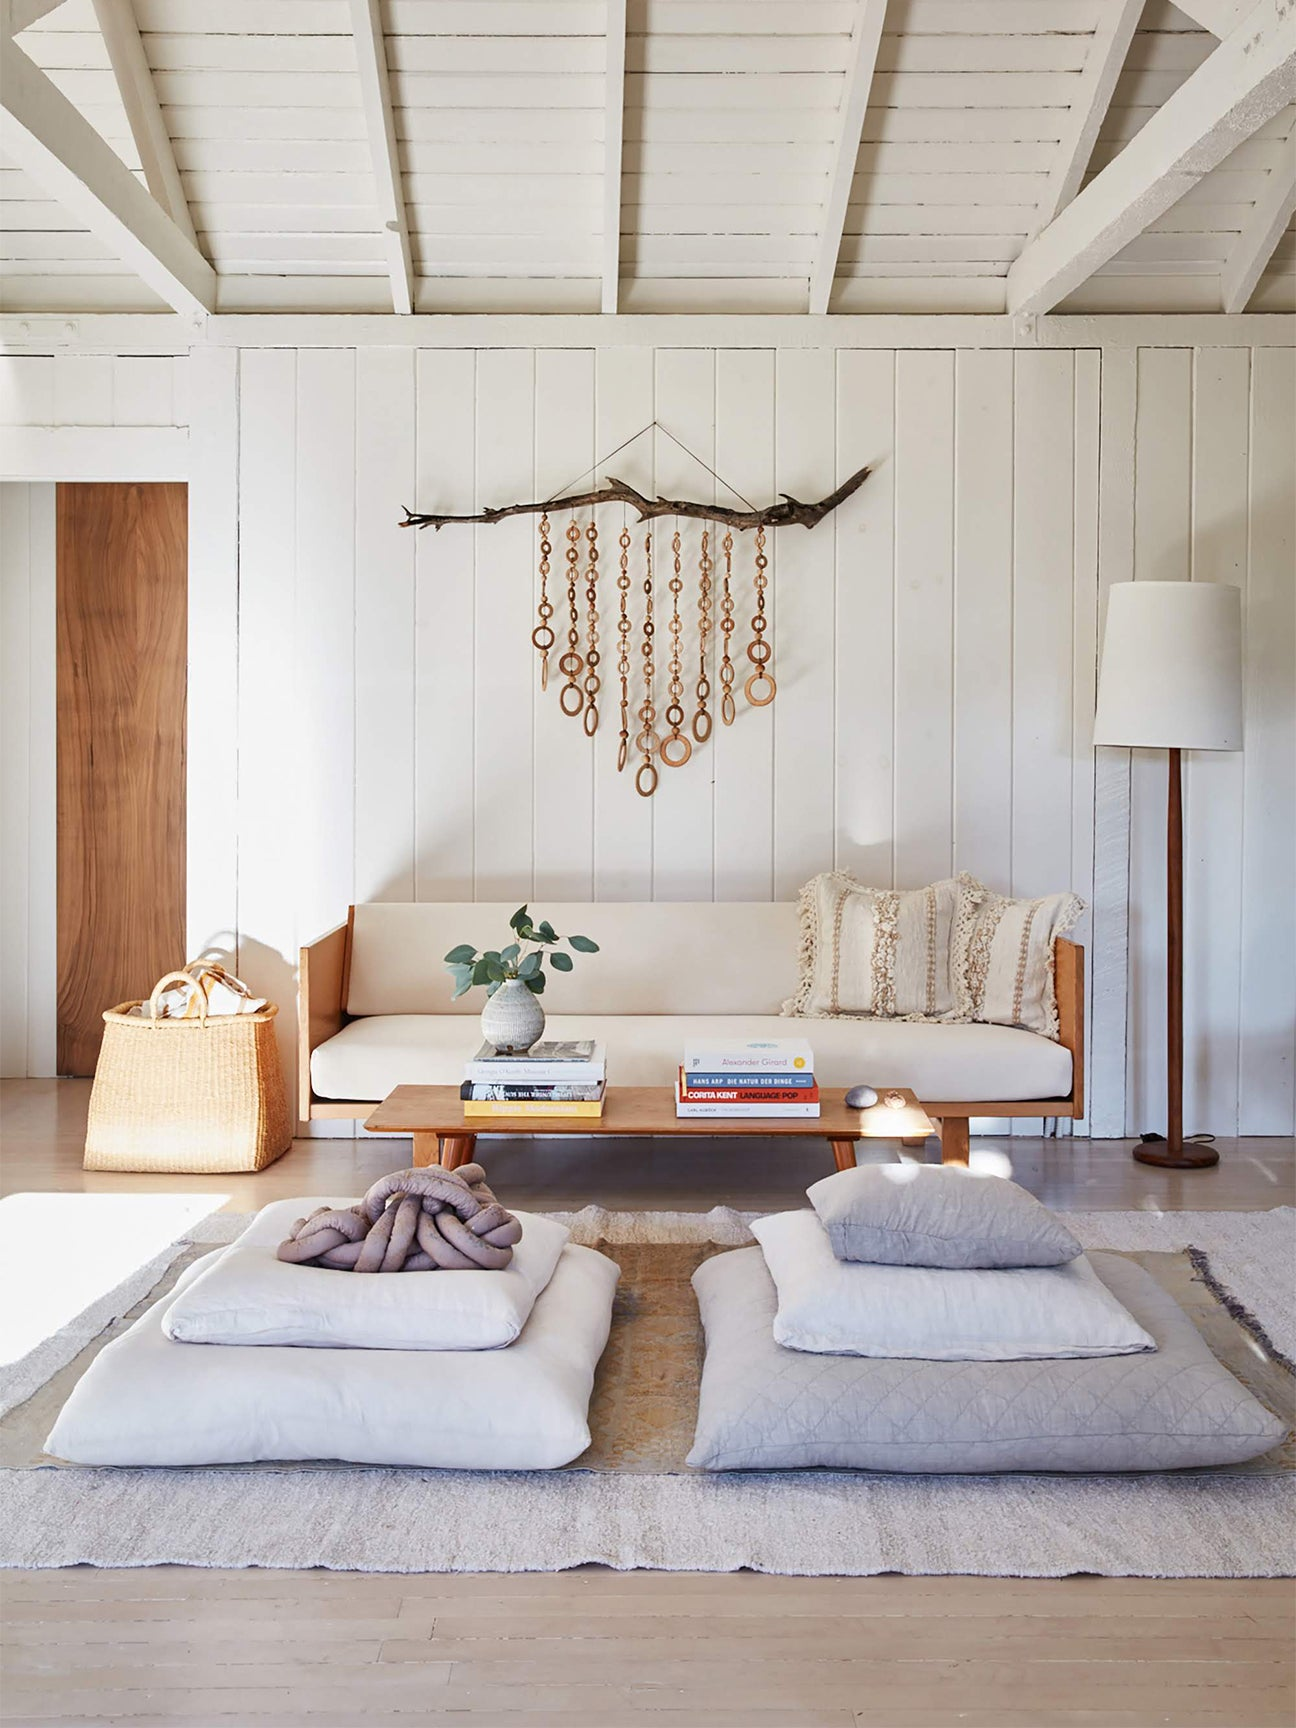 Small living room with Hans Wegner sofa and floor pillows